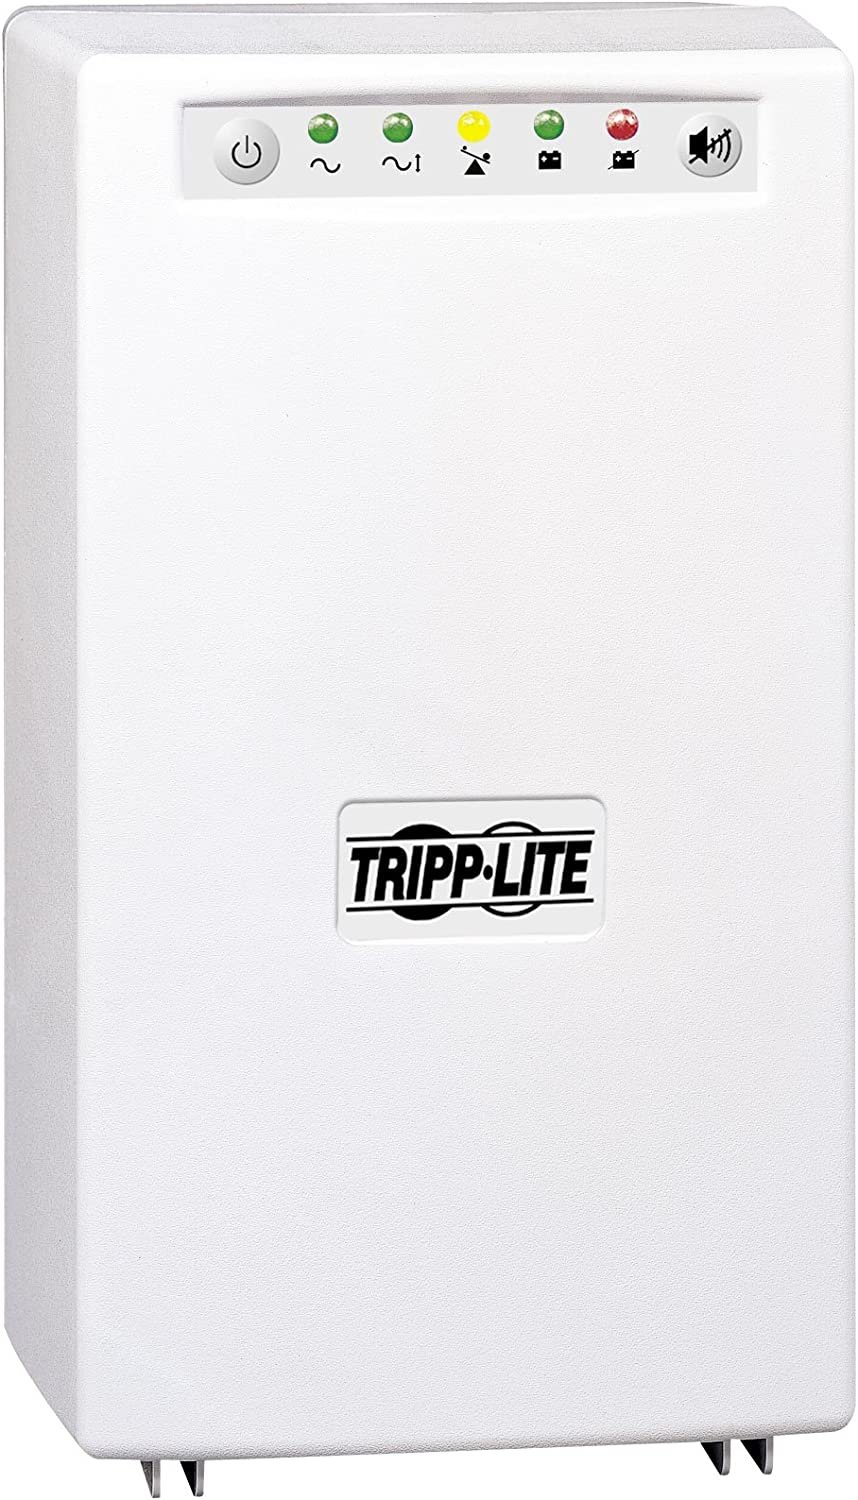 Tripp Lite BCPRO1400 1400VA 940W UPS Desktop Battery Back Up Tower 120V USB PC / Mac, 6 Outlets